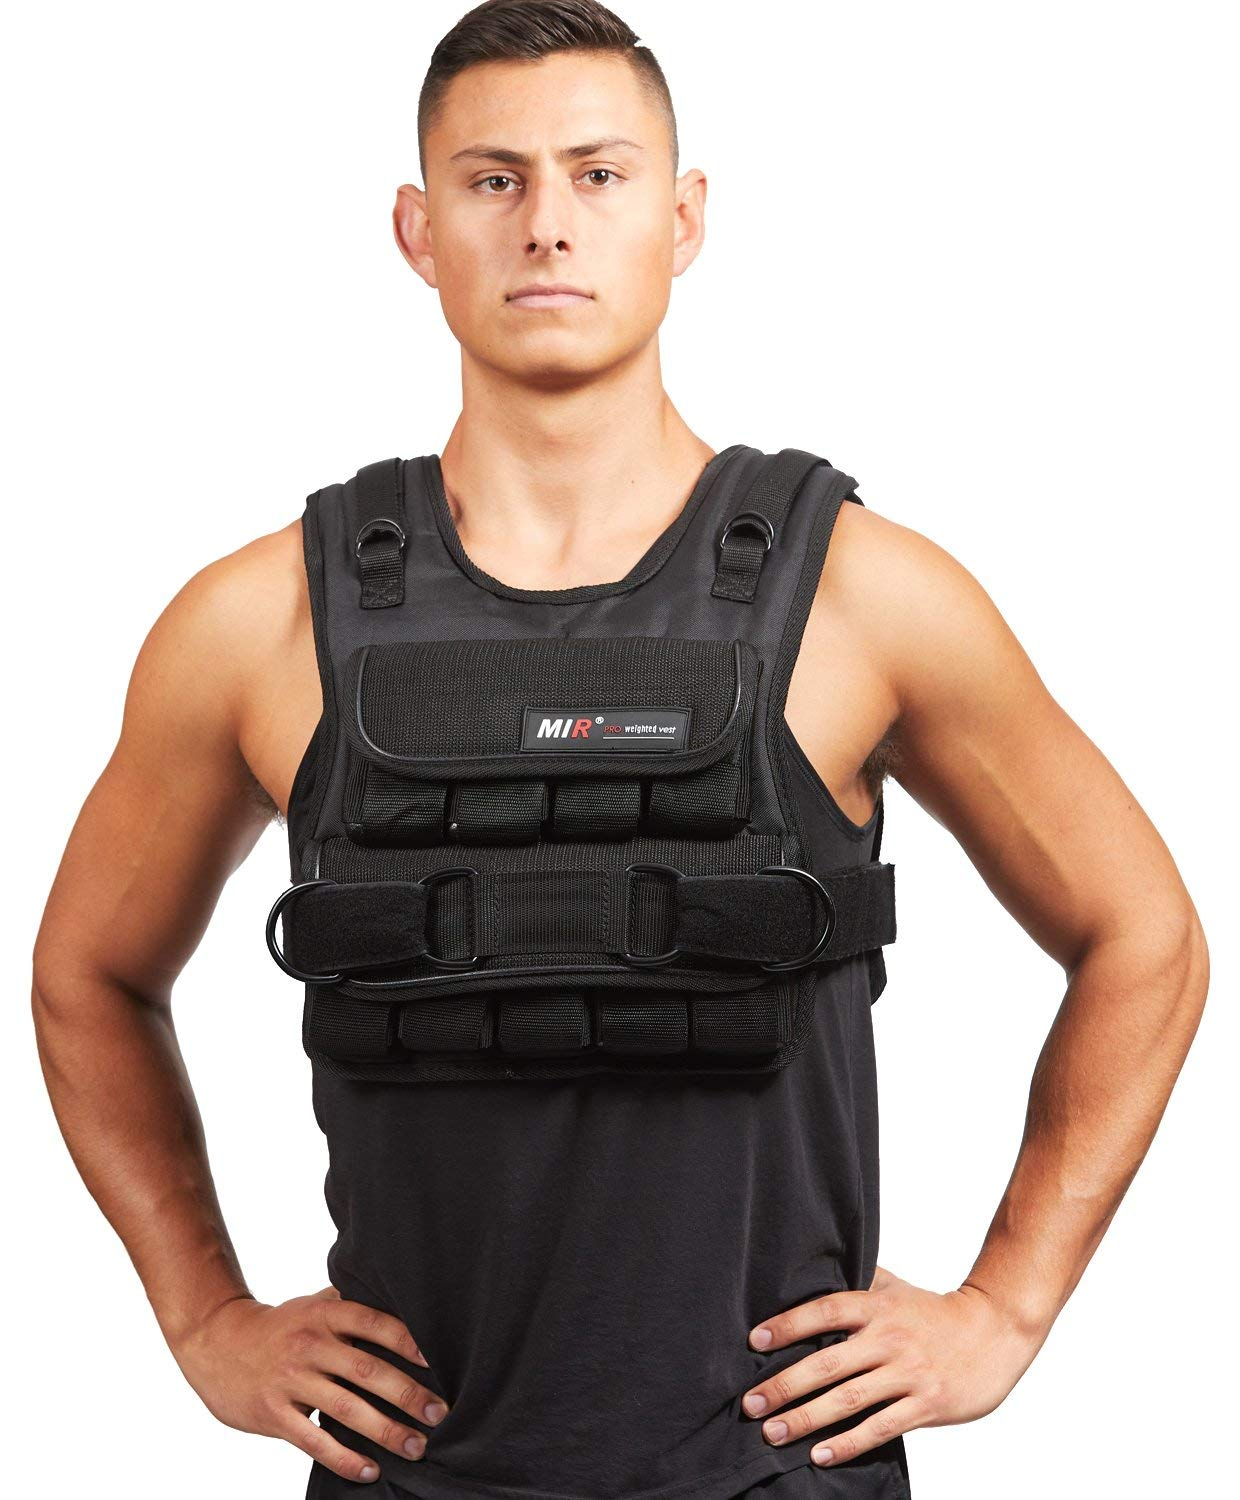 Mir Adjustable Weighted Vest, 30 lb